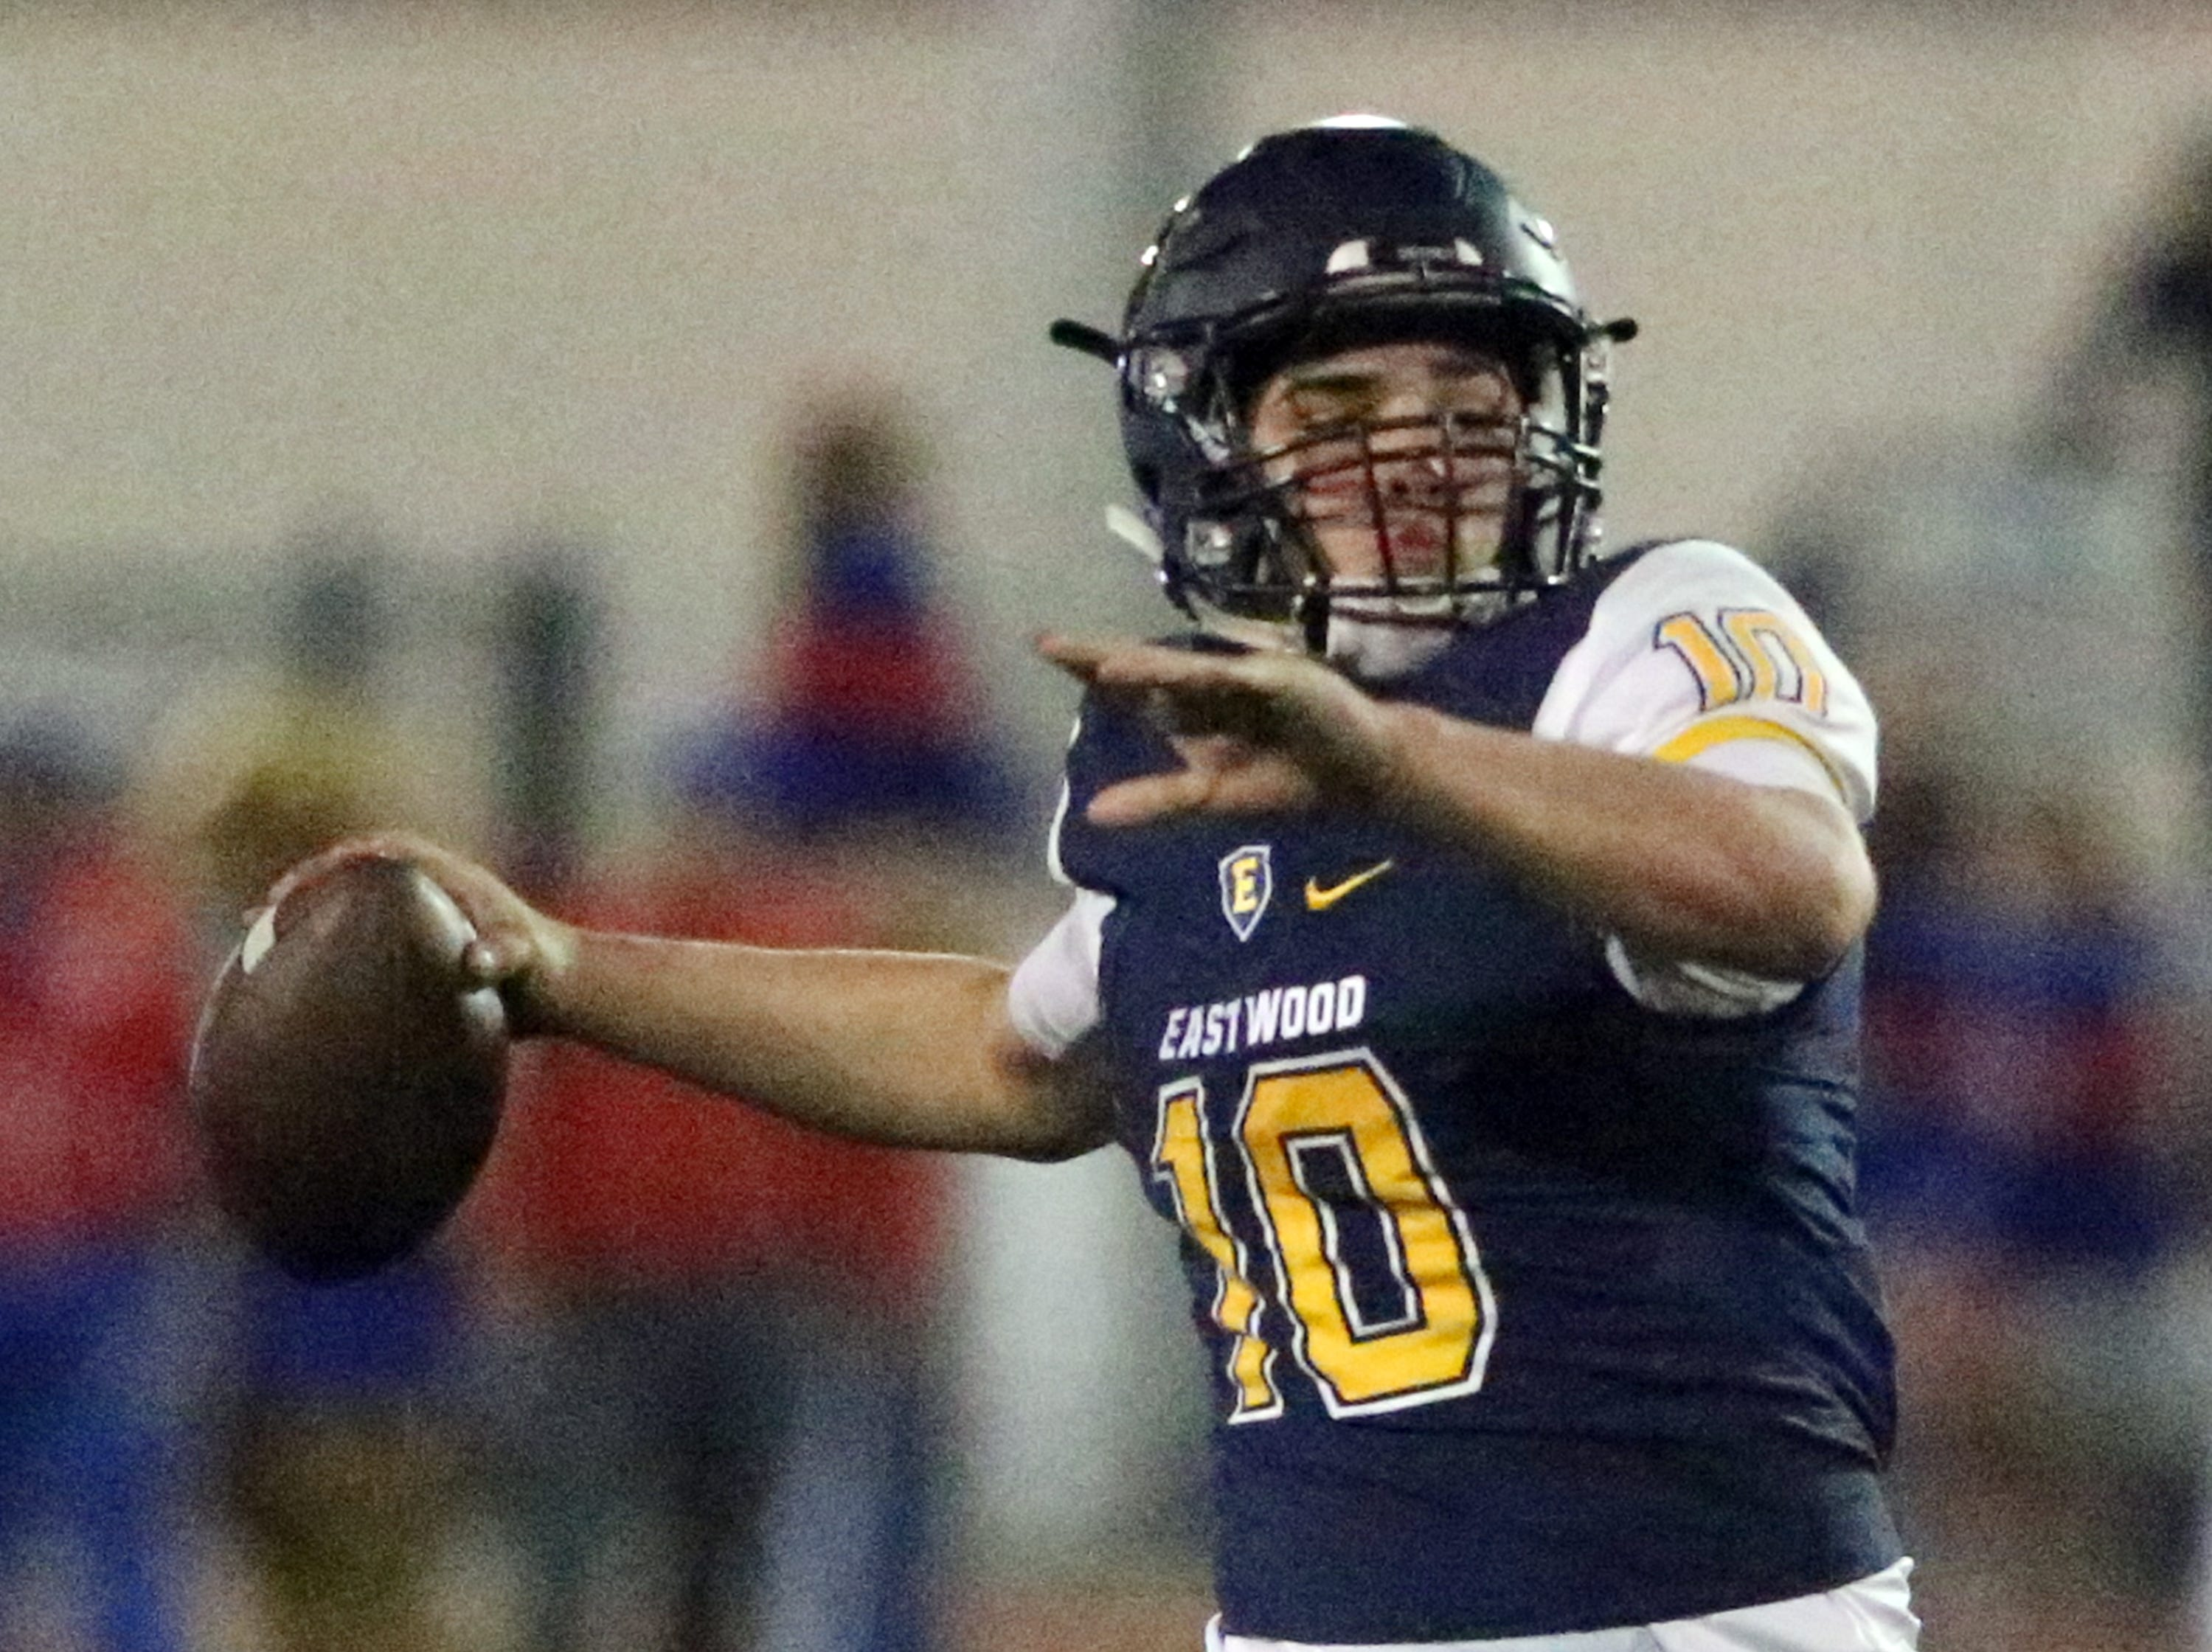 Eastwood quarterback Christian Castaneda finds a receiver before unloading a pass for a touchdown against Abilene Cooper Friday night.